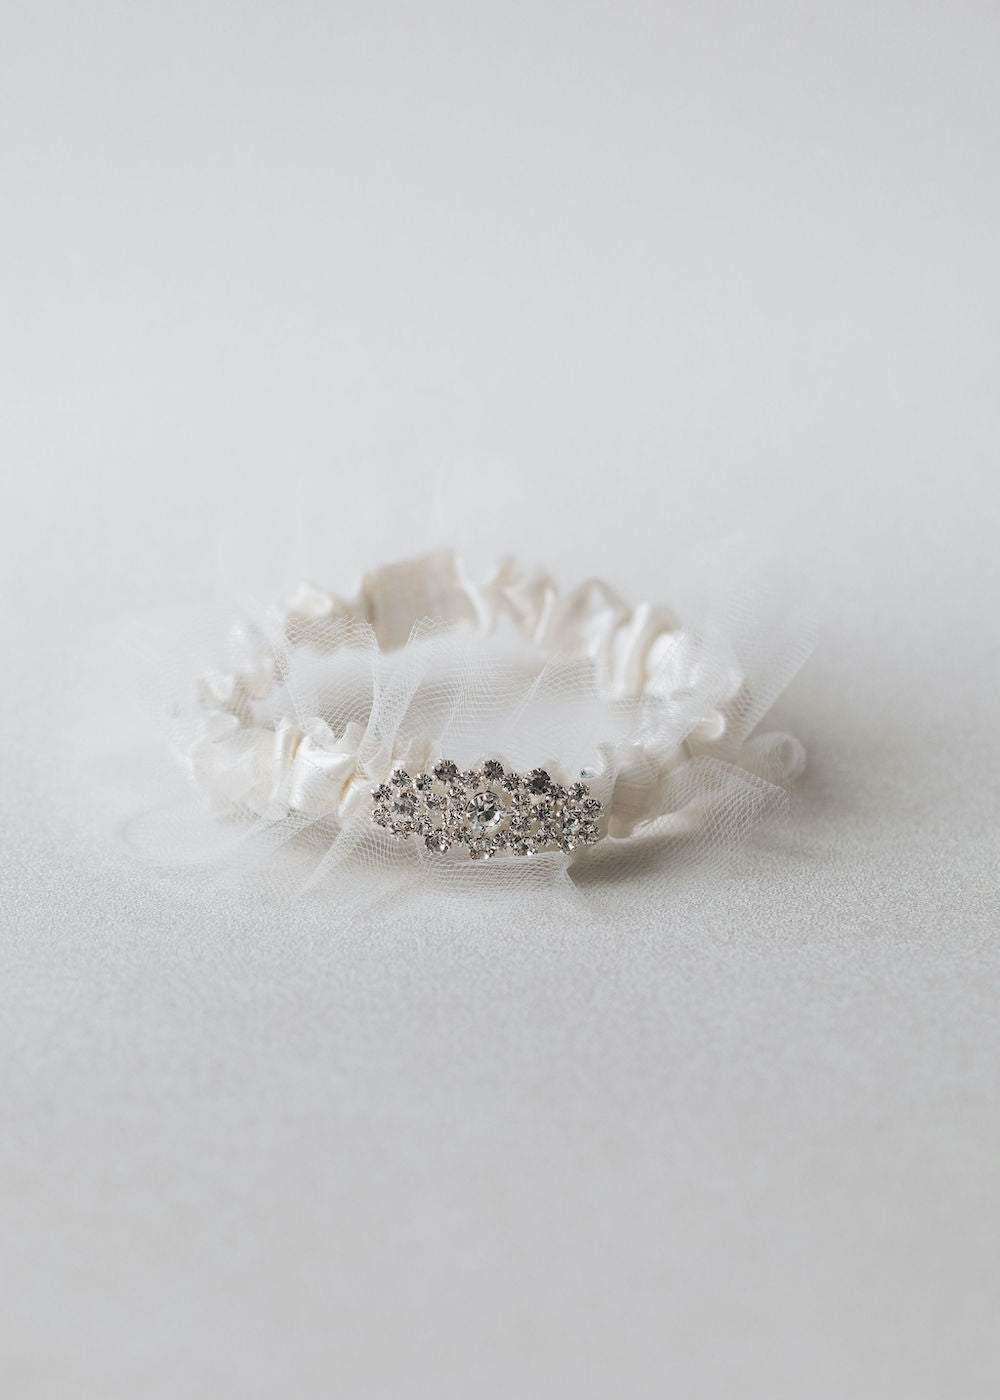 tulle and sparkle personalized wedding garter handmade heirloom by The Garter Girl